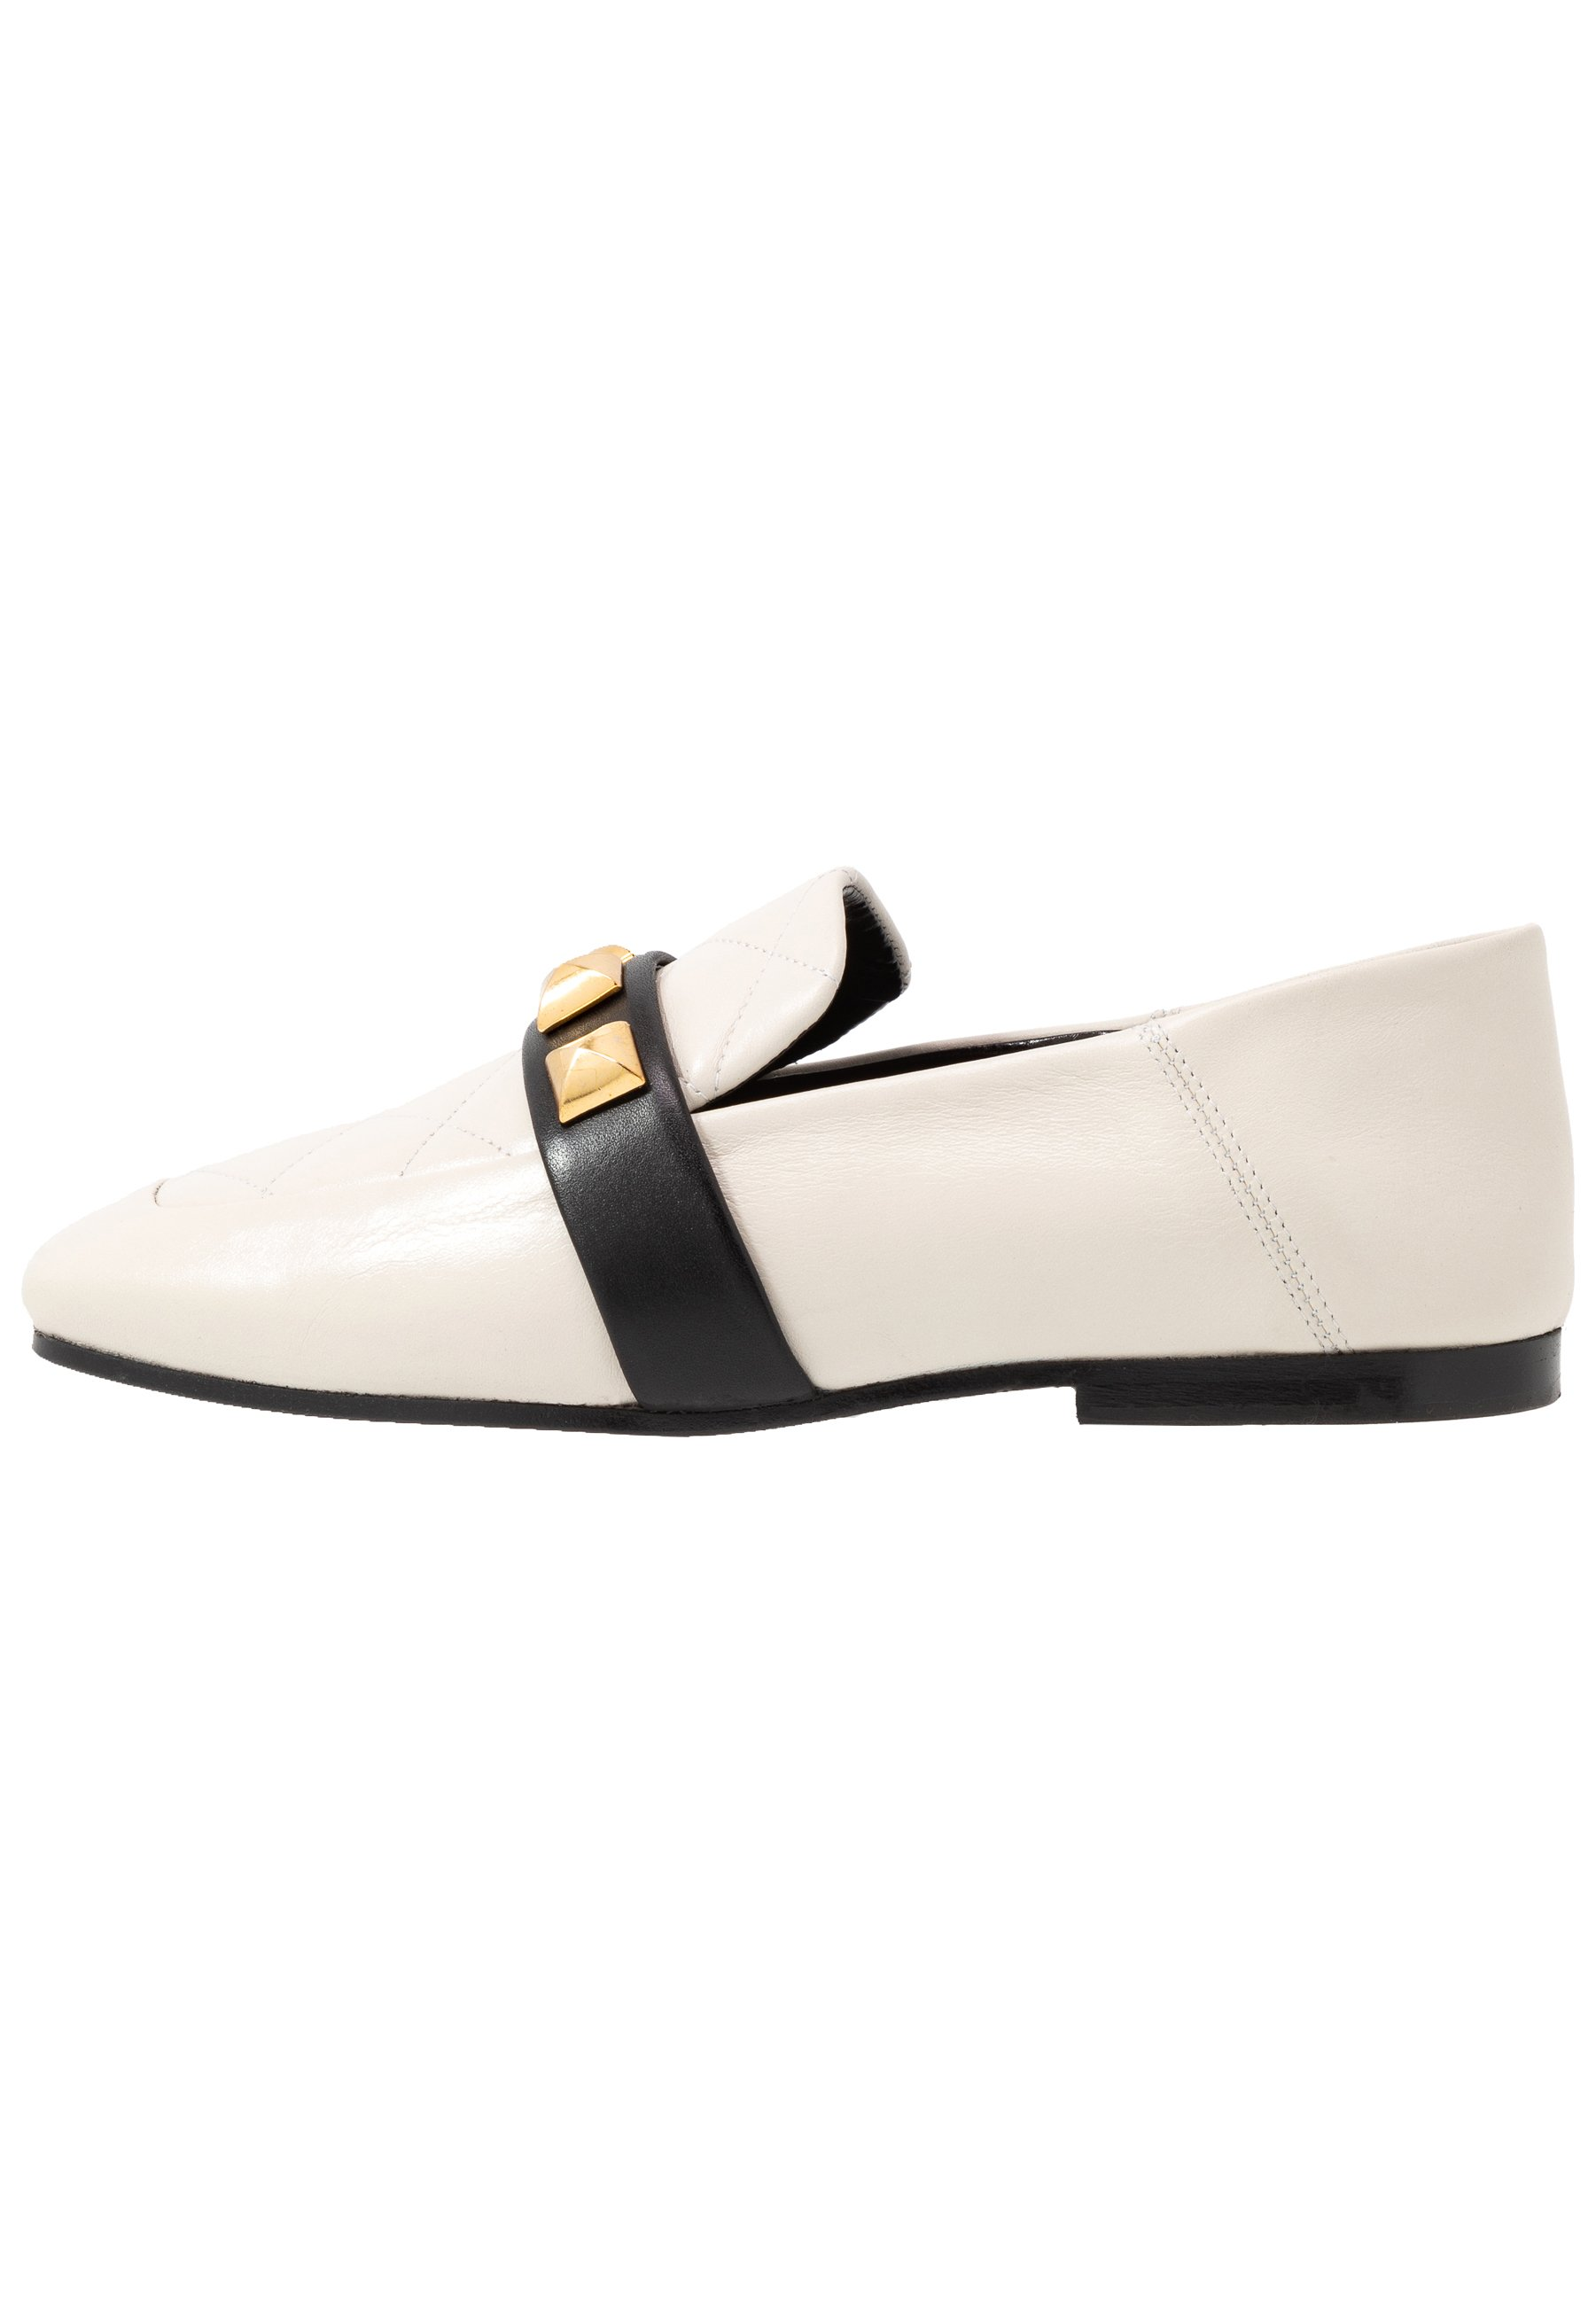 Claudie Pierlot Loafers - bicolore